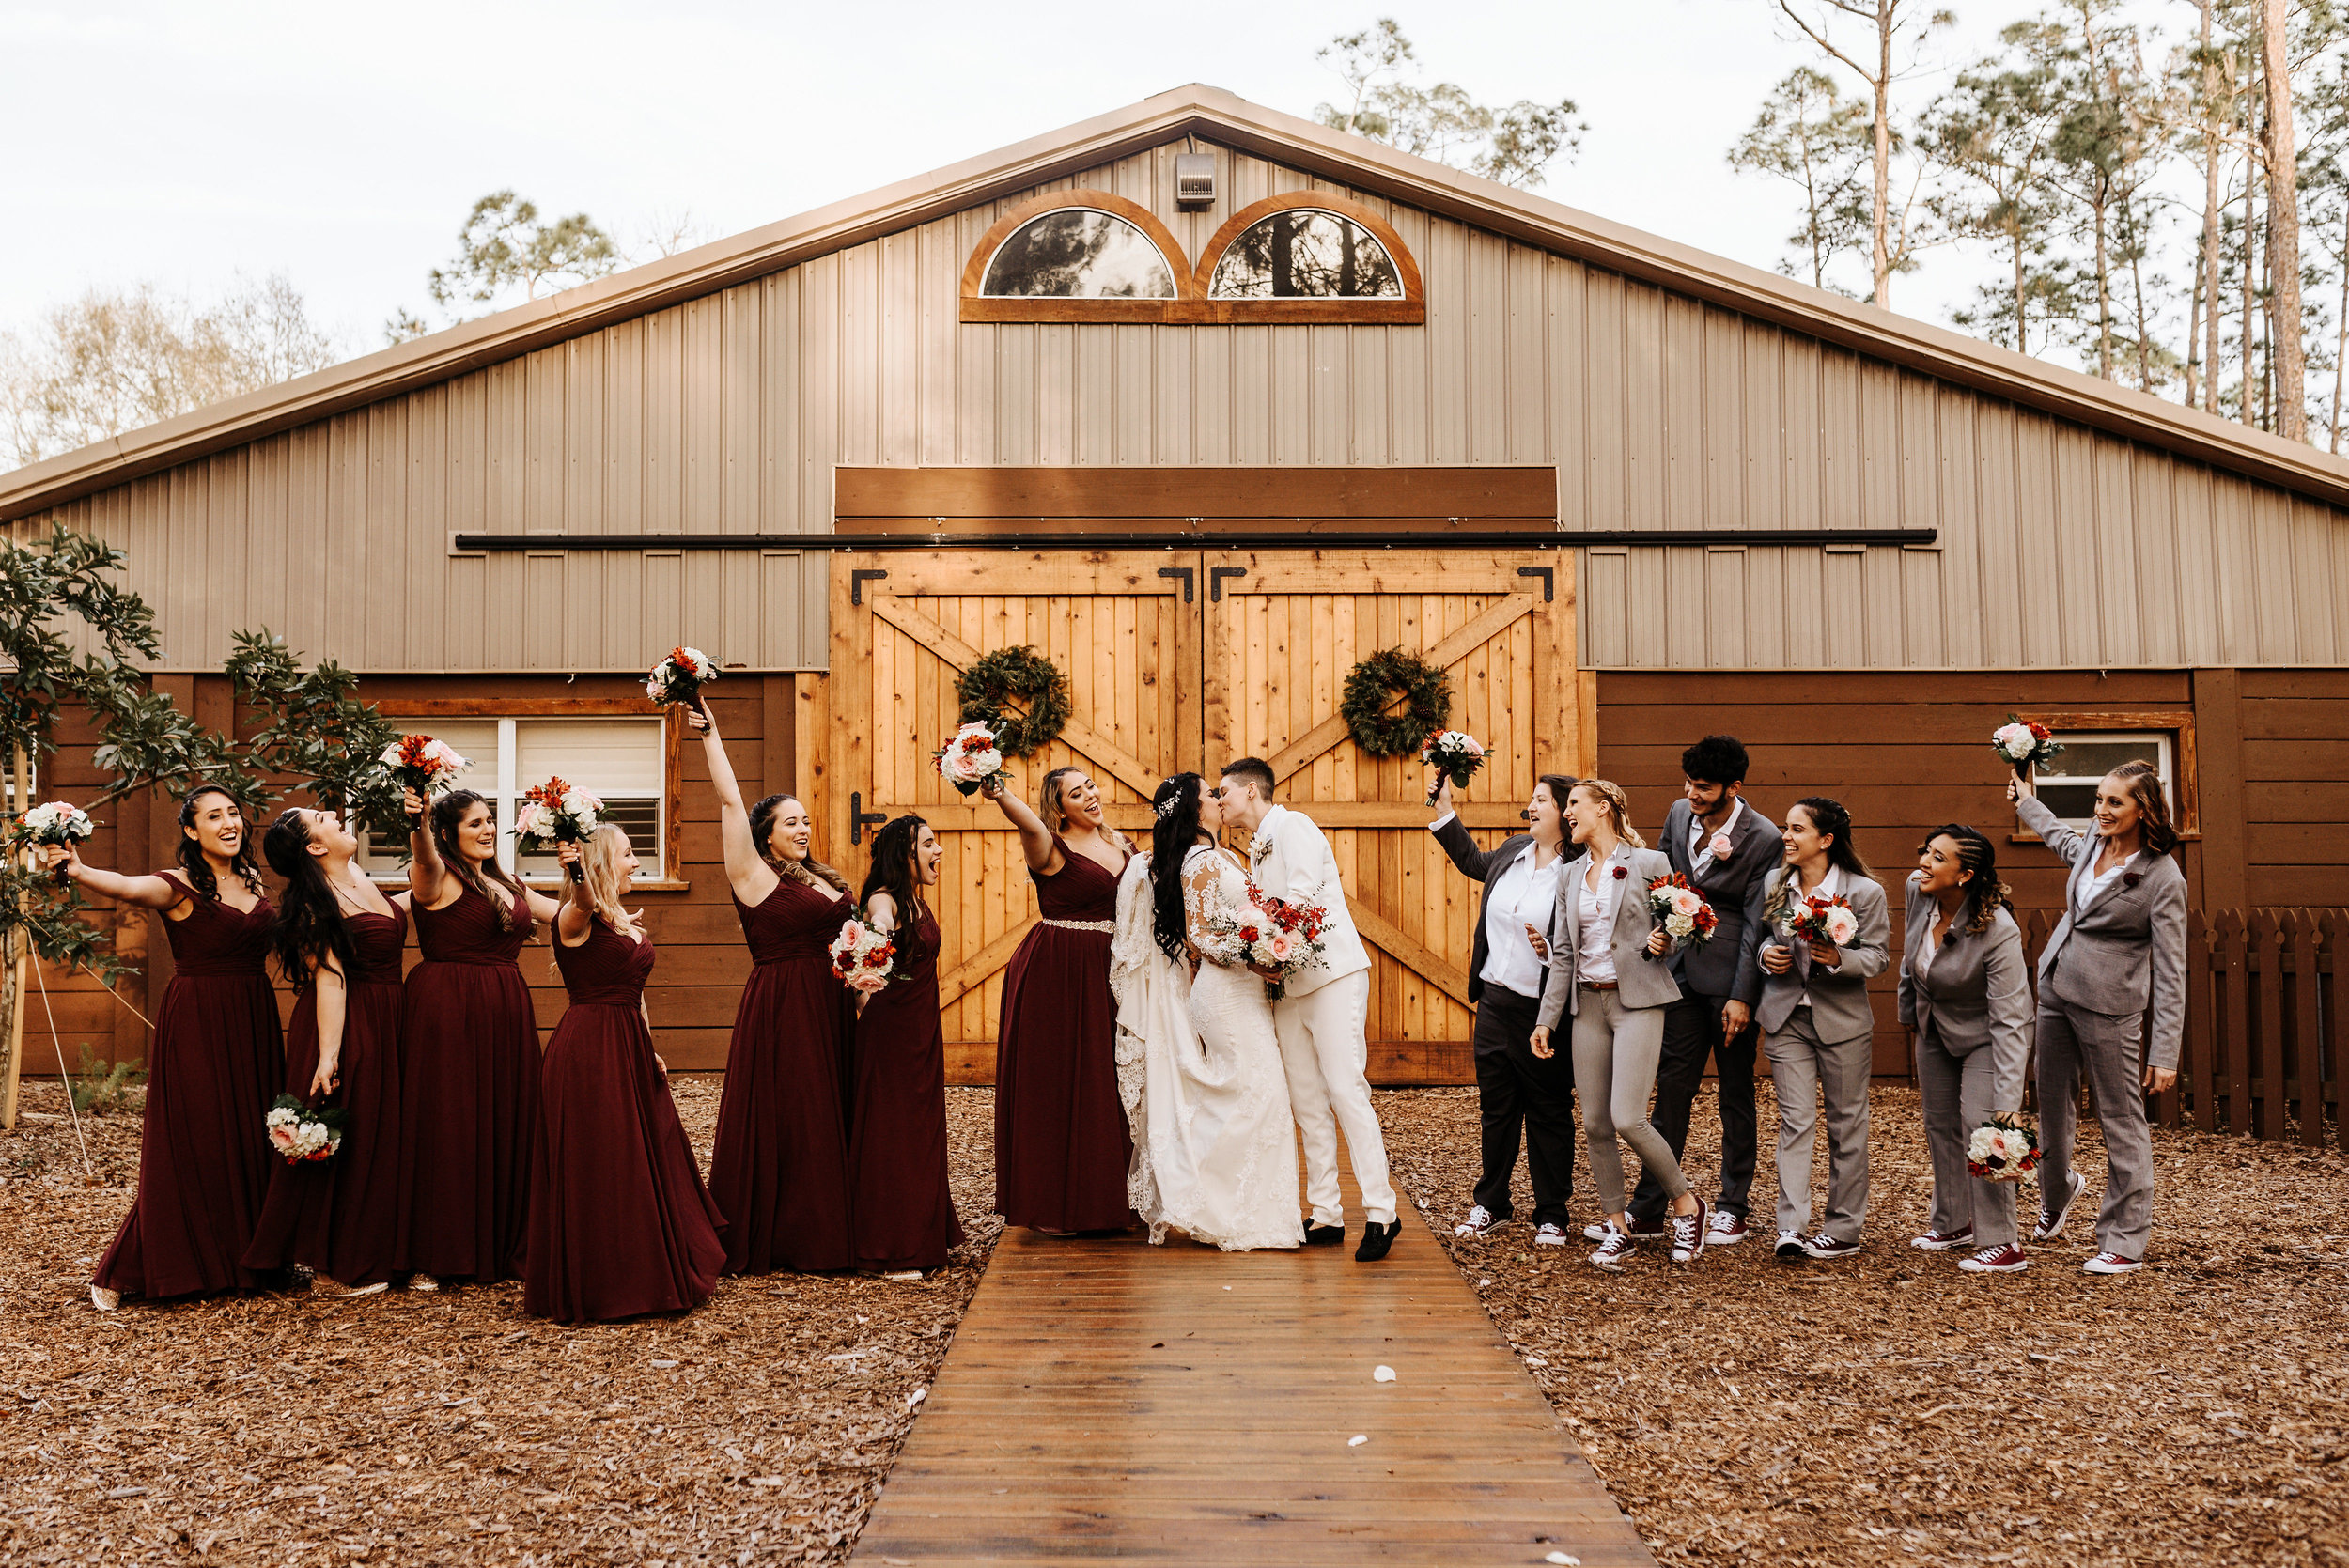 Alexia_Celeste_Wedding_Cielo_Blu_Barn_Photography_by_V_6544.jpg